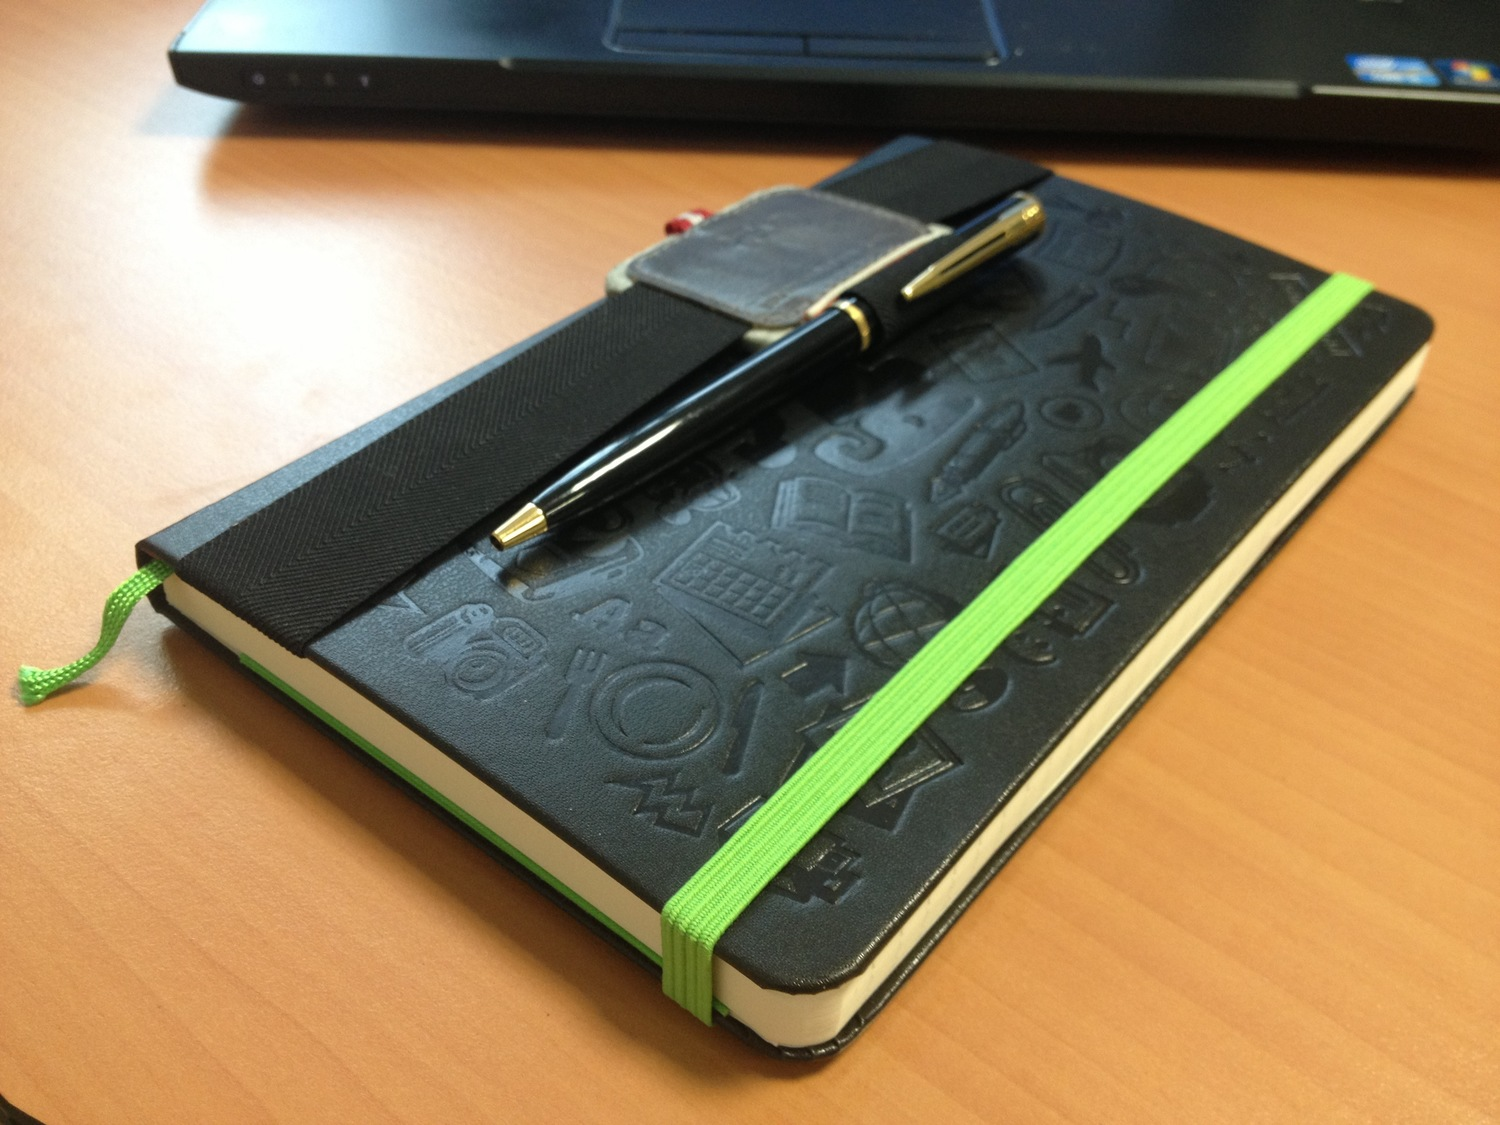 Moleskine is a hugely popular notebook brand, and it's even partnered with Evernote to bring its products into the digital age.